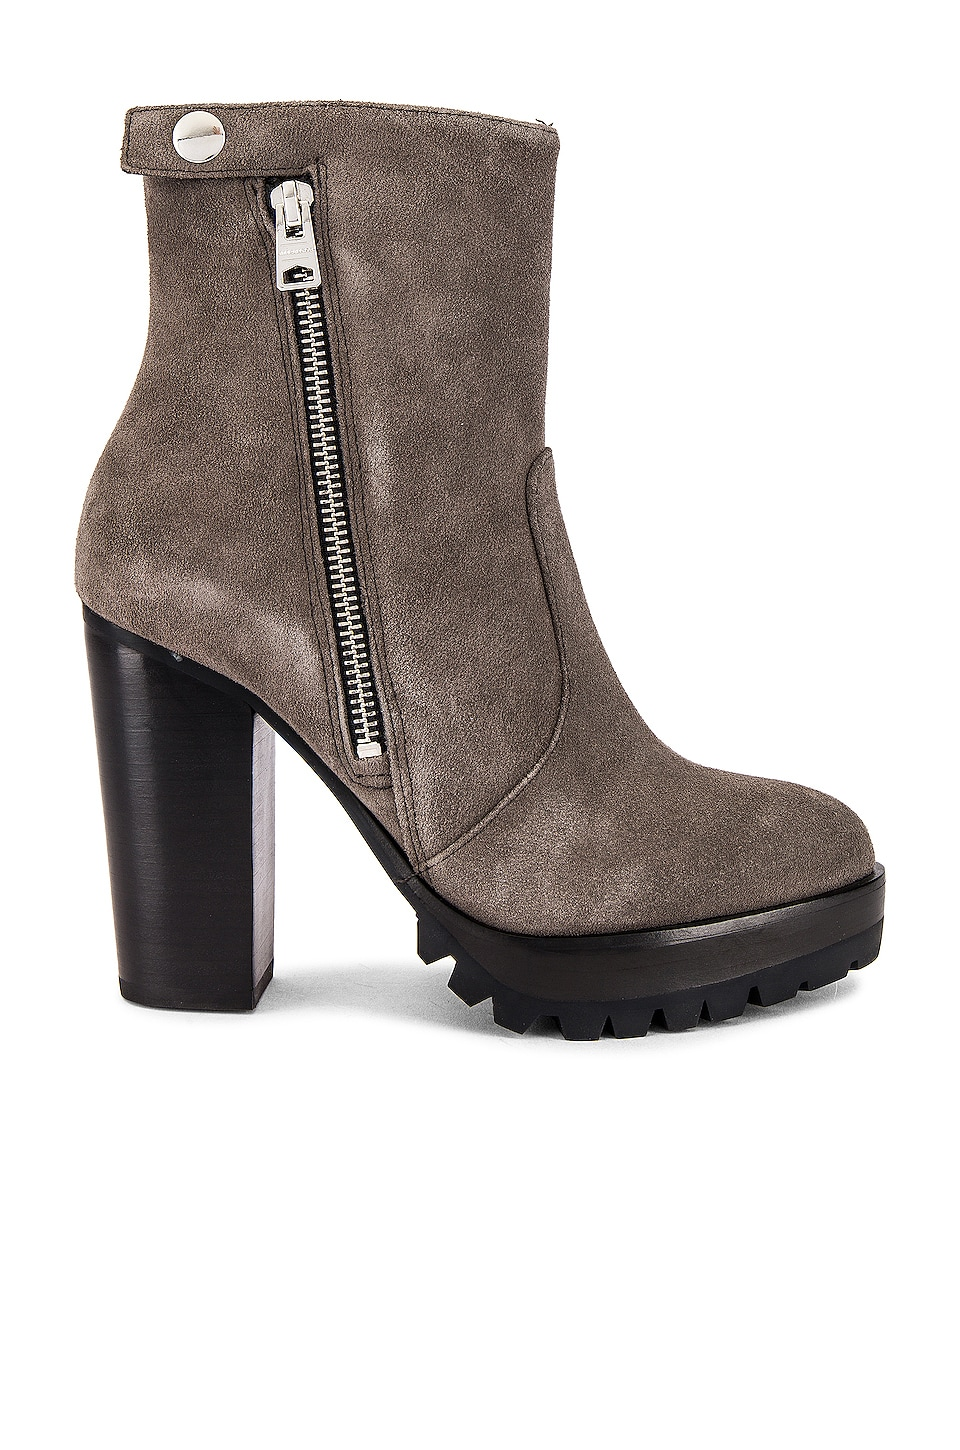 ALLSAINTS Ana Bootie in Charcoal Grey Suede